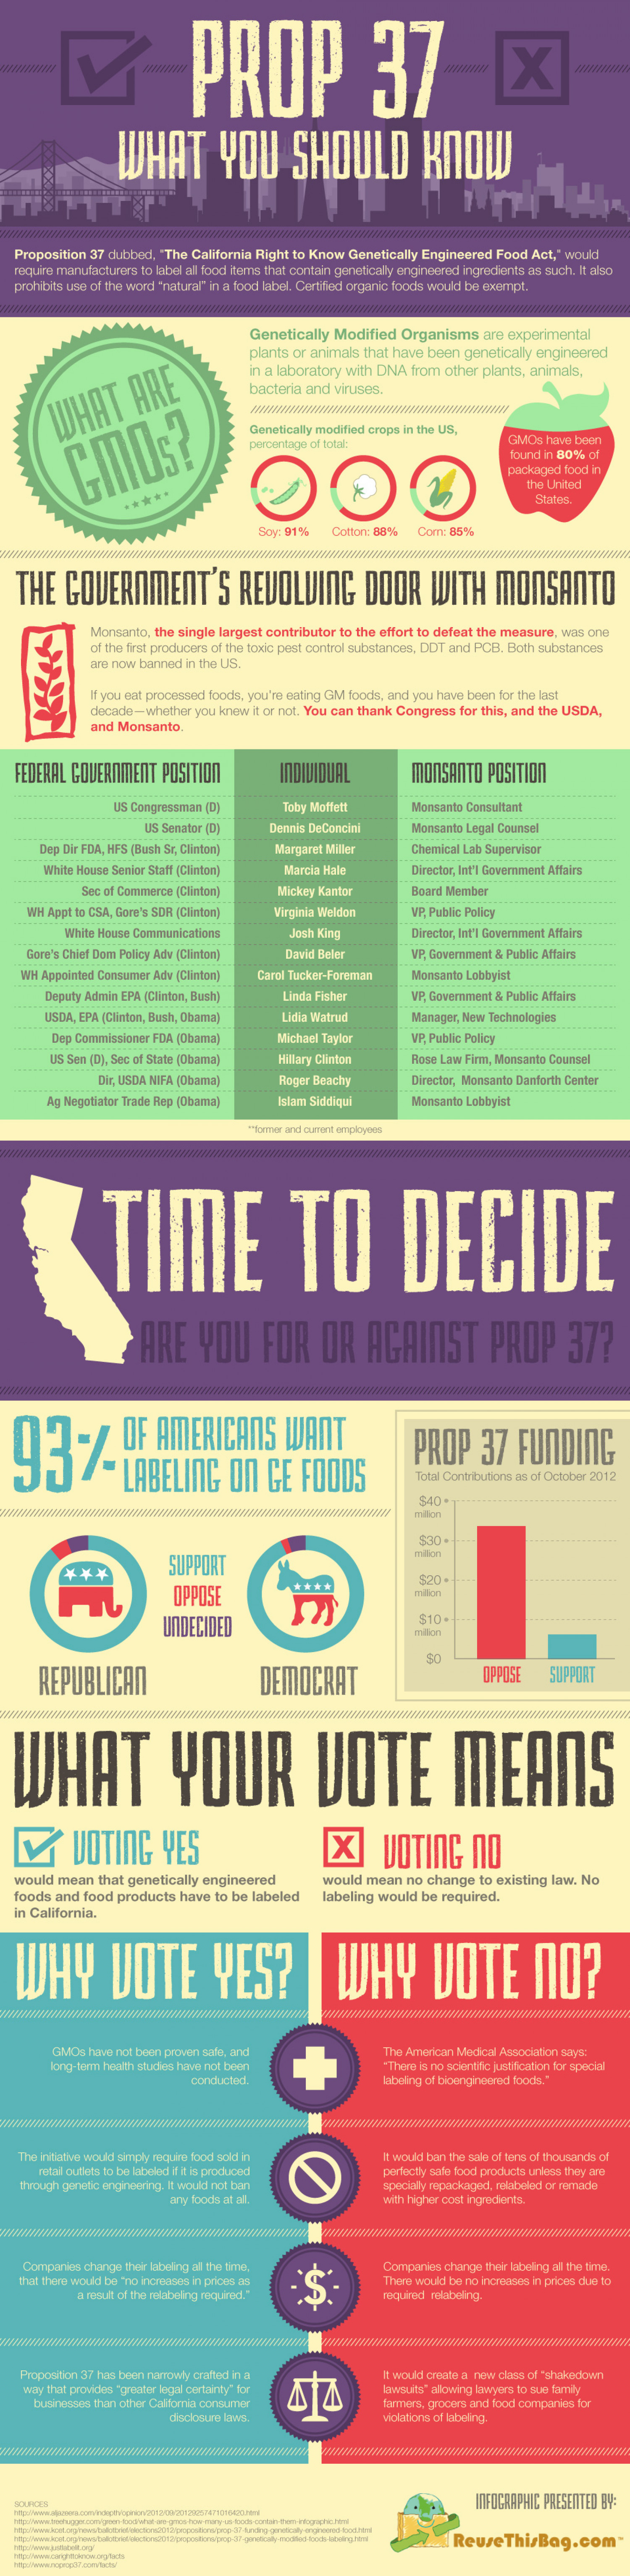 Prop 37: What You Should Know Infographic